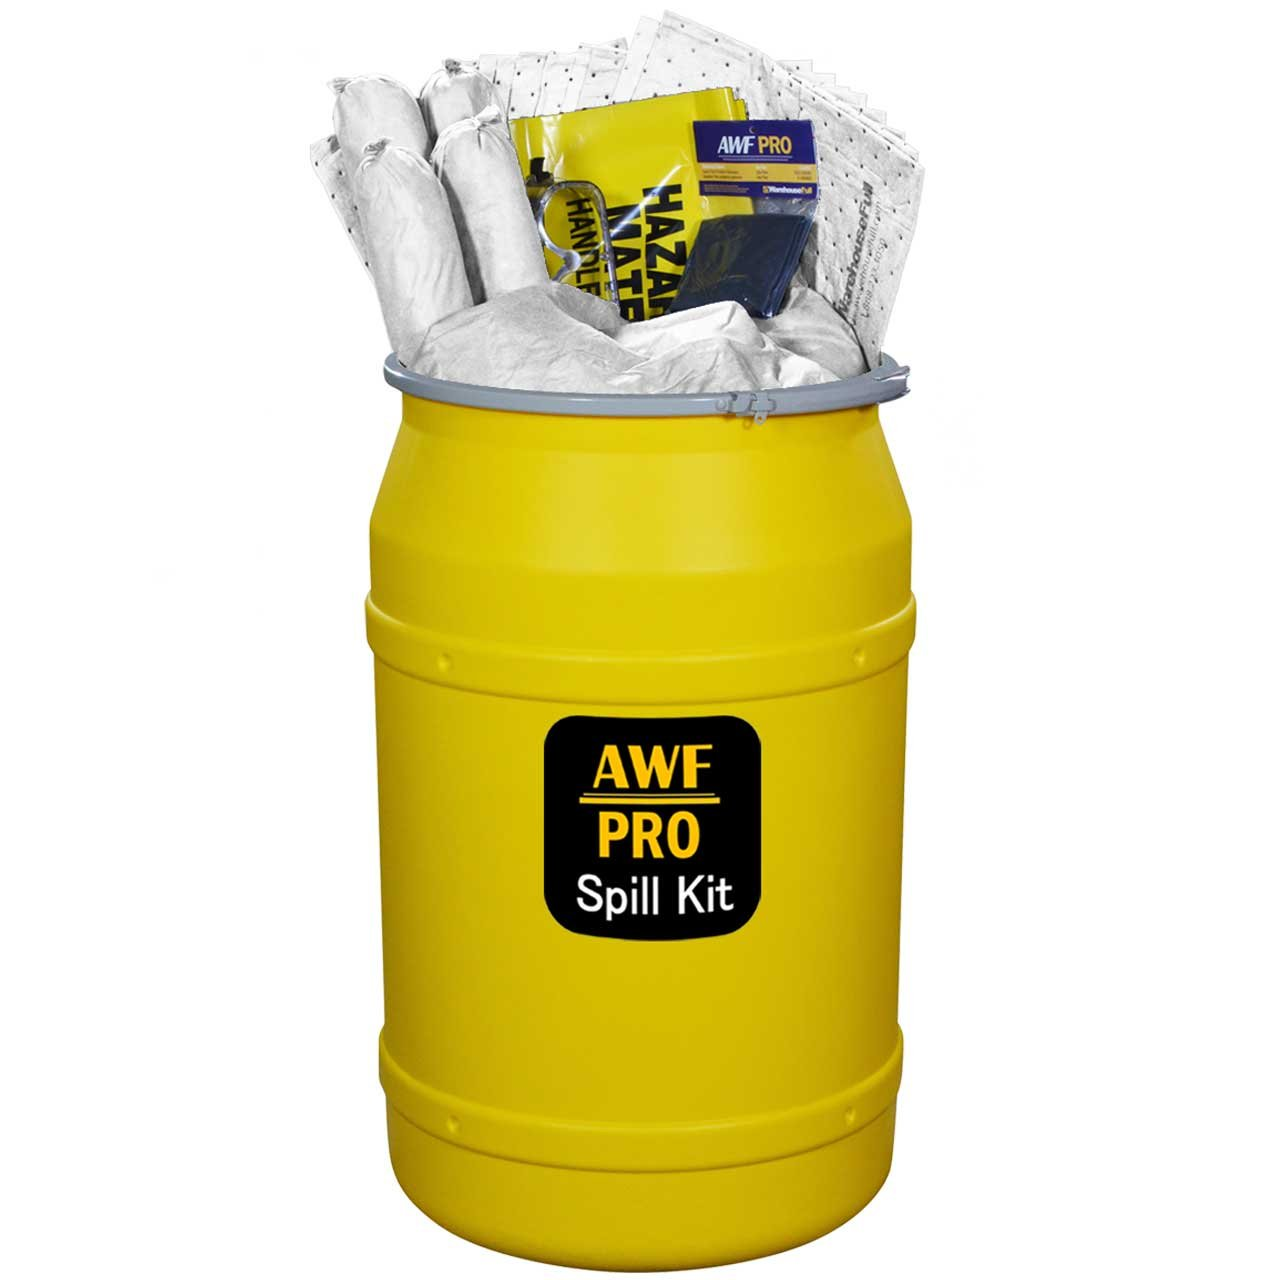 55 Gallon Oil Only Spill Kit, Pro Grade, 125 Pc: Metal Lever Lock Drum, 100 Heavy Duty Pads 15''x19'', 5 Socks 3''x12', 8 Pillows 18''x18'', Chemical Gloves, Hazmat Bags, Goggles, Guide Book, Sign